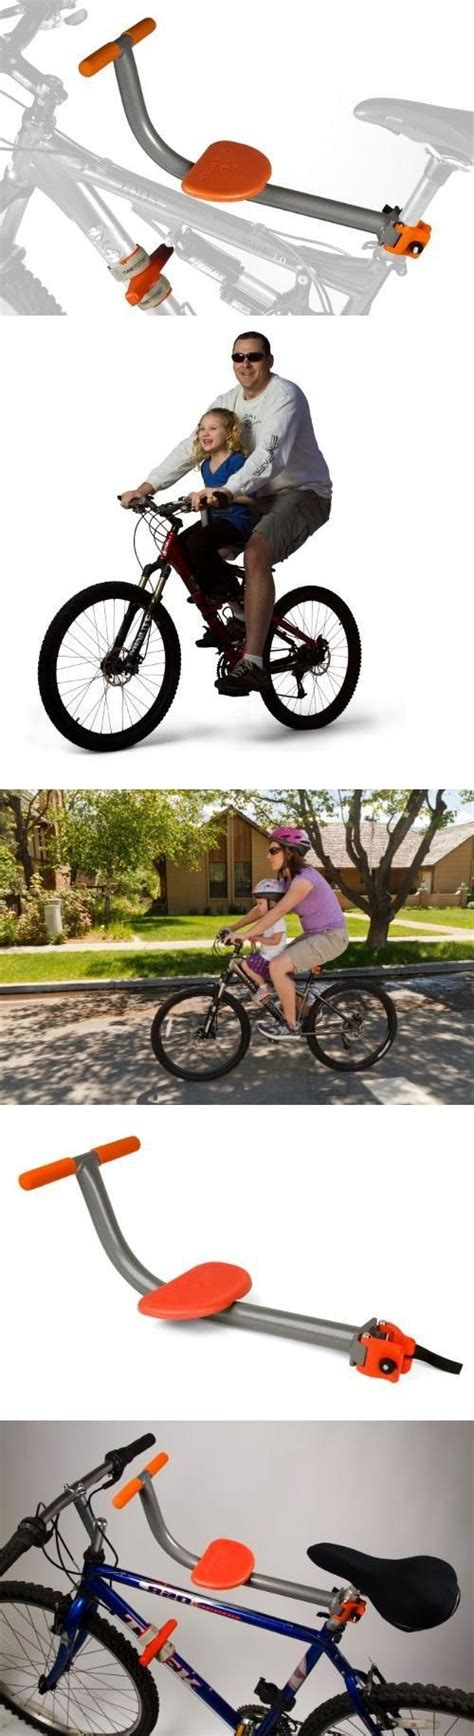 age limit for front seat passengers tyke toter front mount child bicycle seat age 2 5 yrs